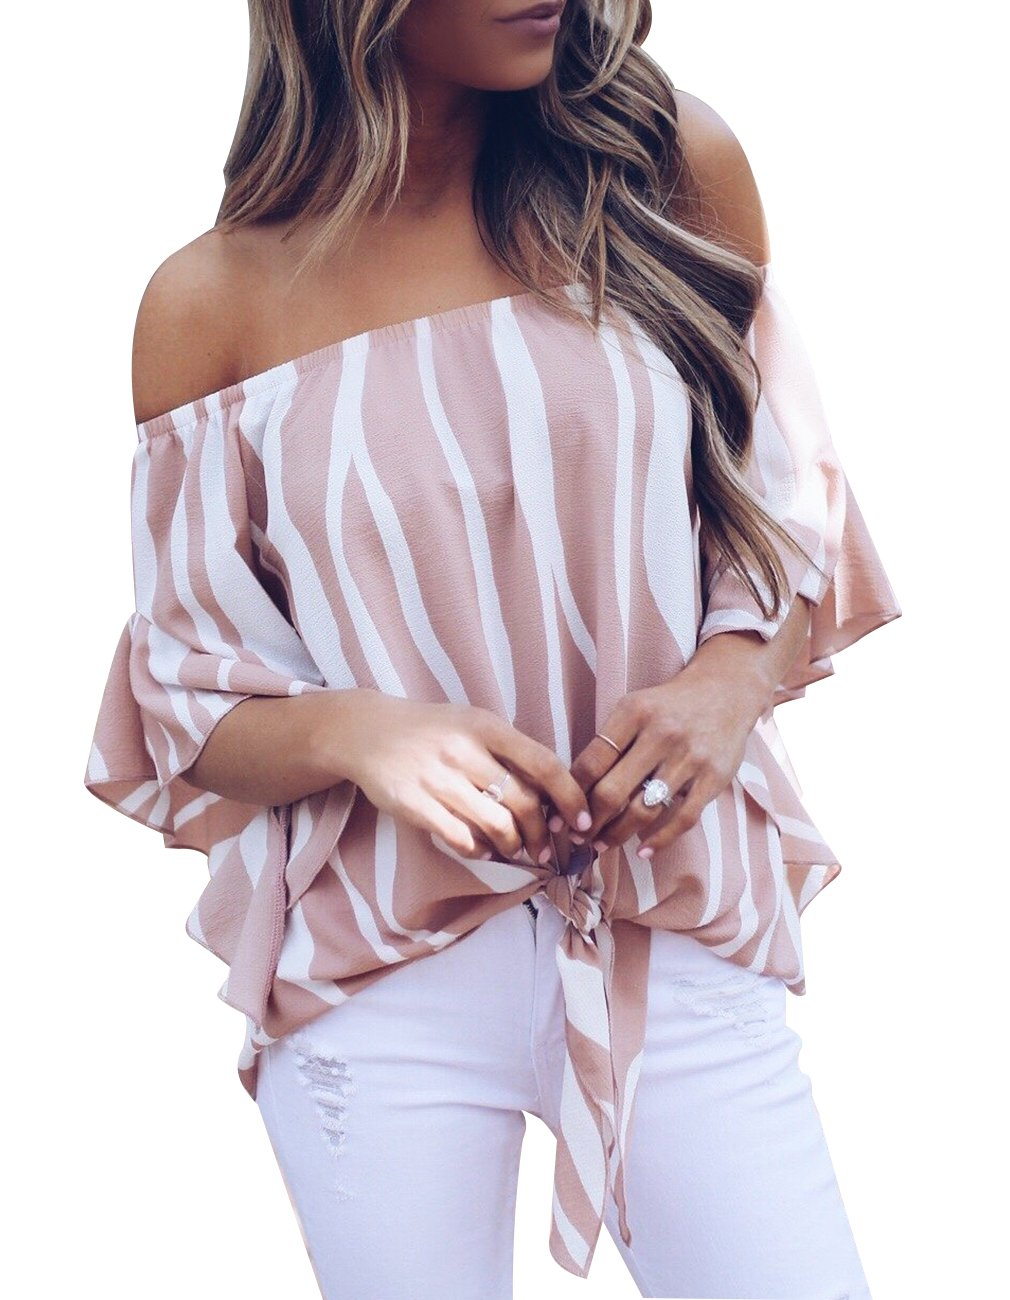 Women's Striped Off The Shoulder Bell Sleeve Tops Shirt Tie Knot Chiffon Casual Blouses (XL, Striped-Pink)